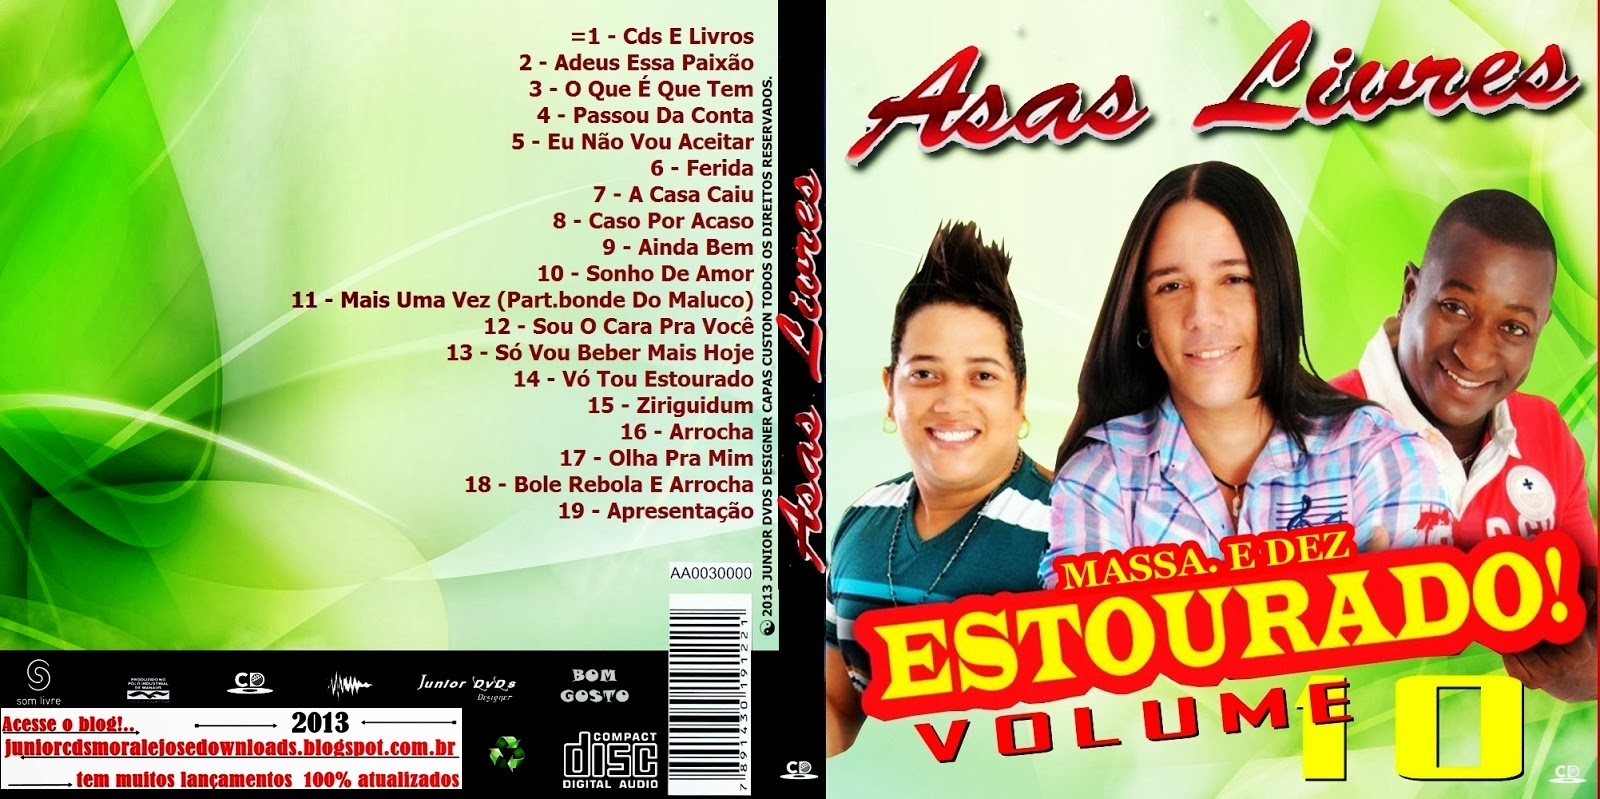 cd asas livres ao vivo estourado cd 2013